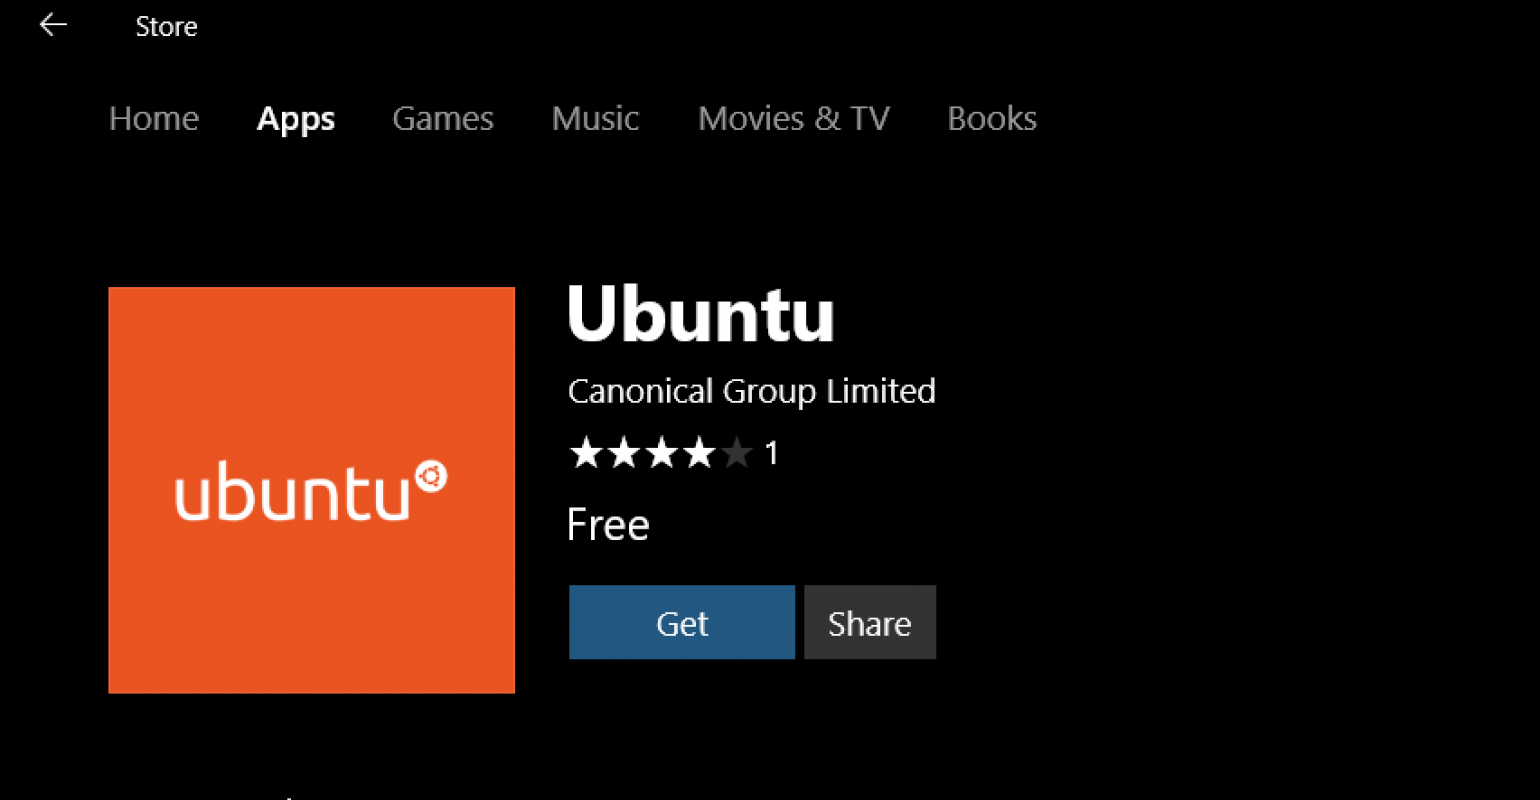 Linux | Ubuntu is now available from the Windows Store | IT Pro